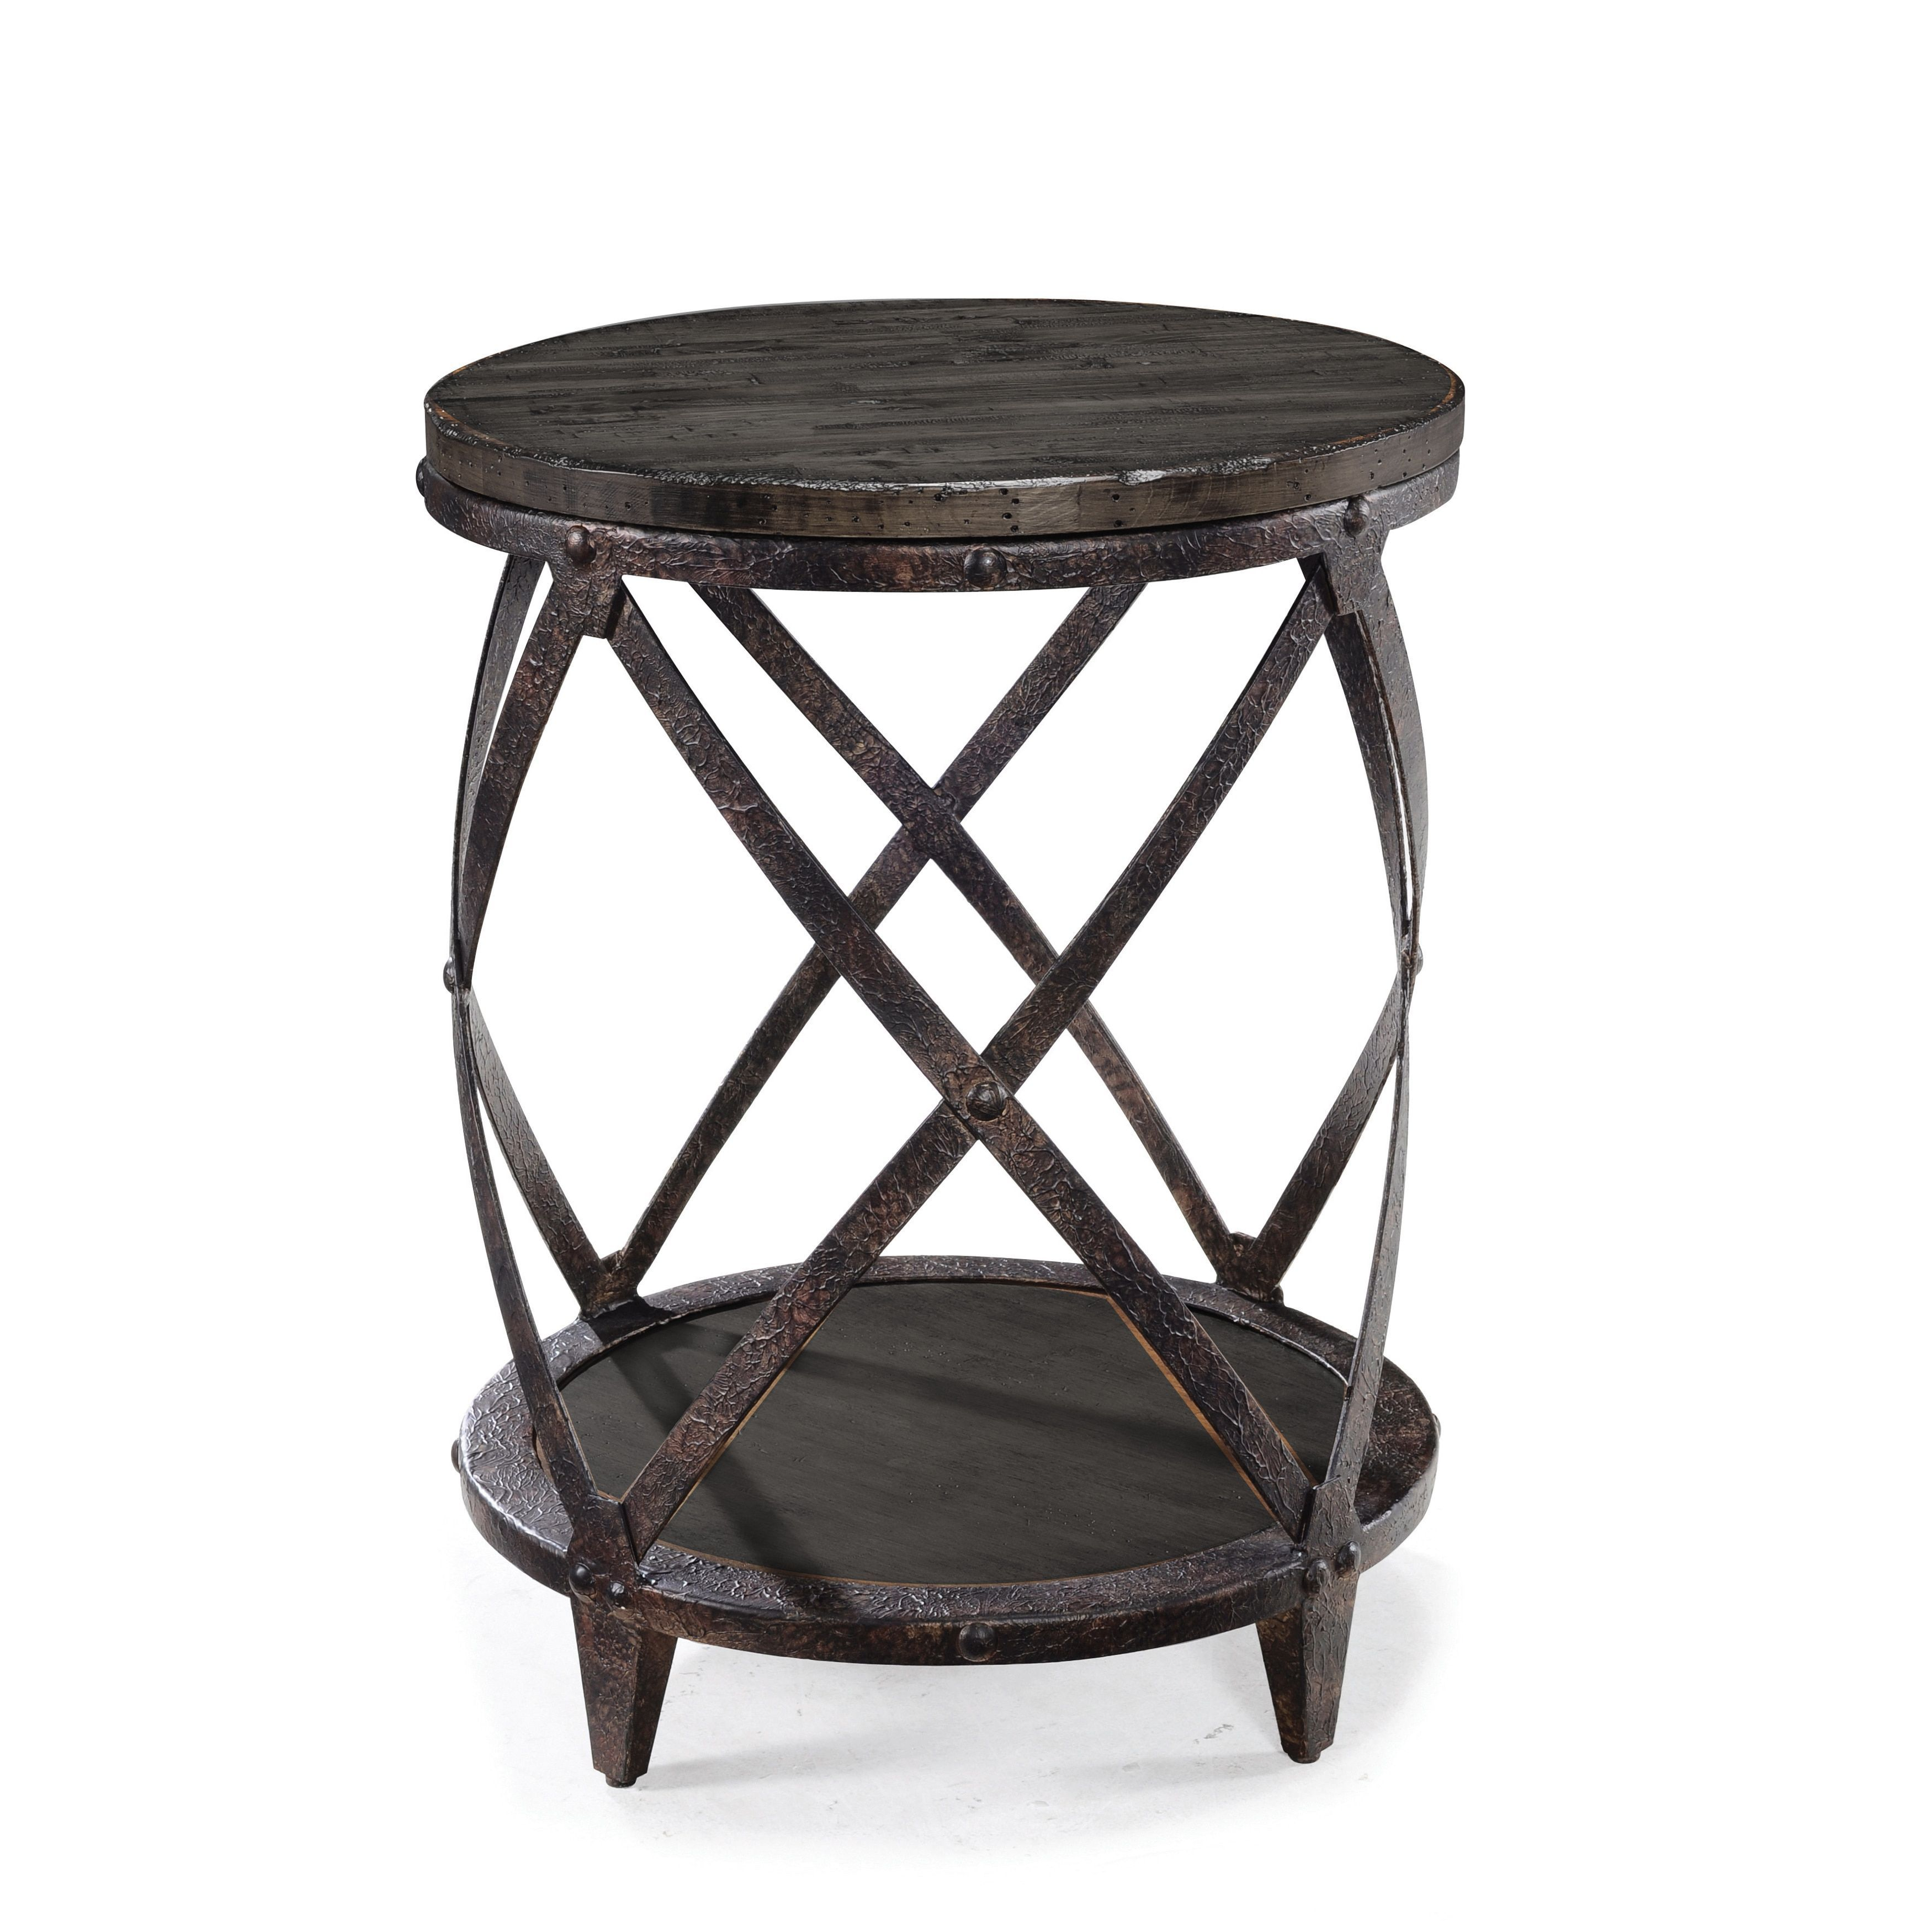 magnussen milford grey metal and wood round accent table freya glass telephone modern vintage furniture kmart console counter height chairs balcony umbrella pottery barn style